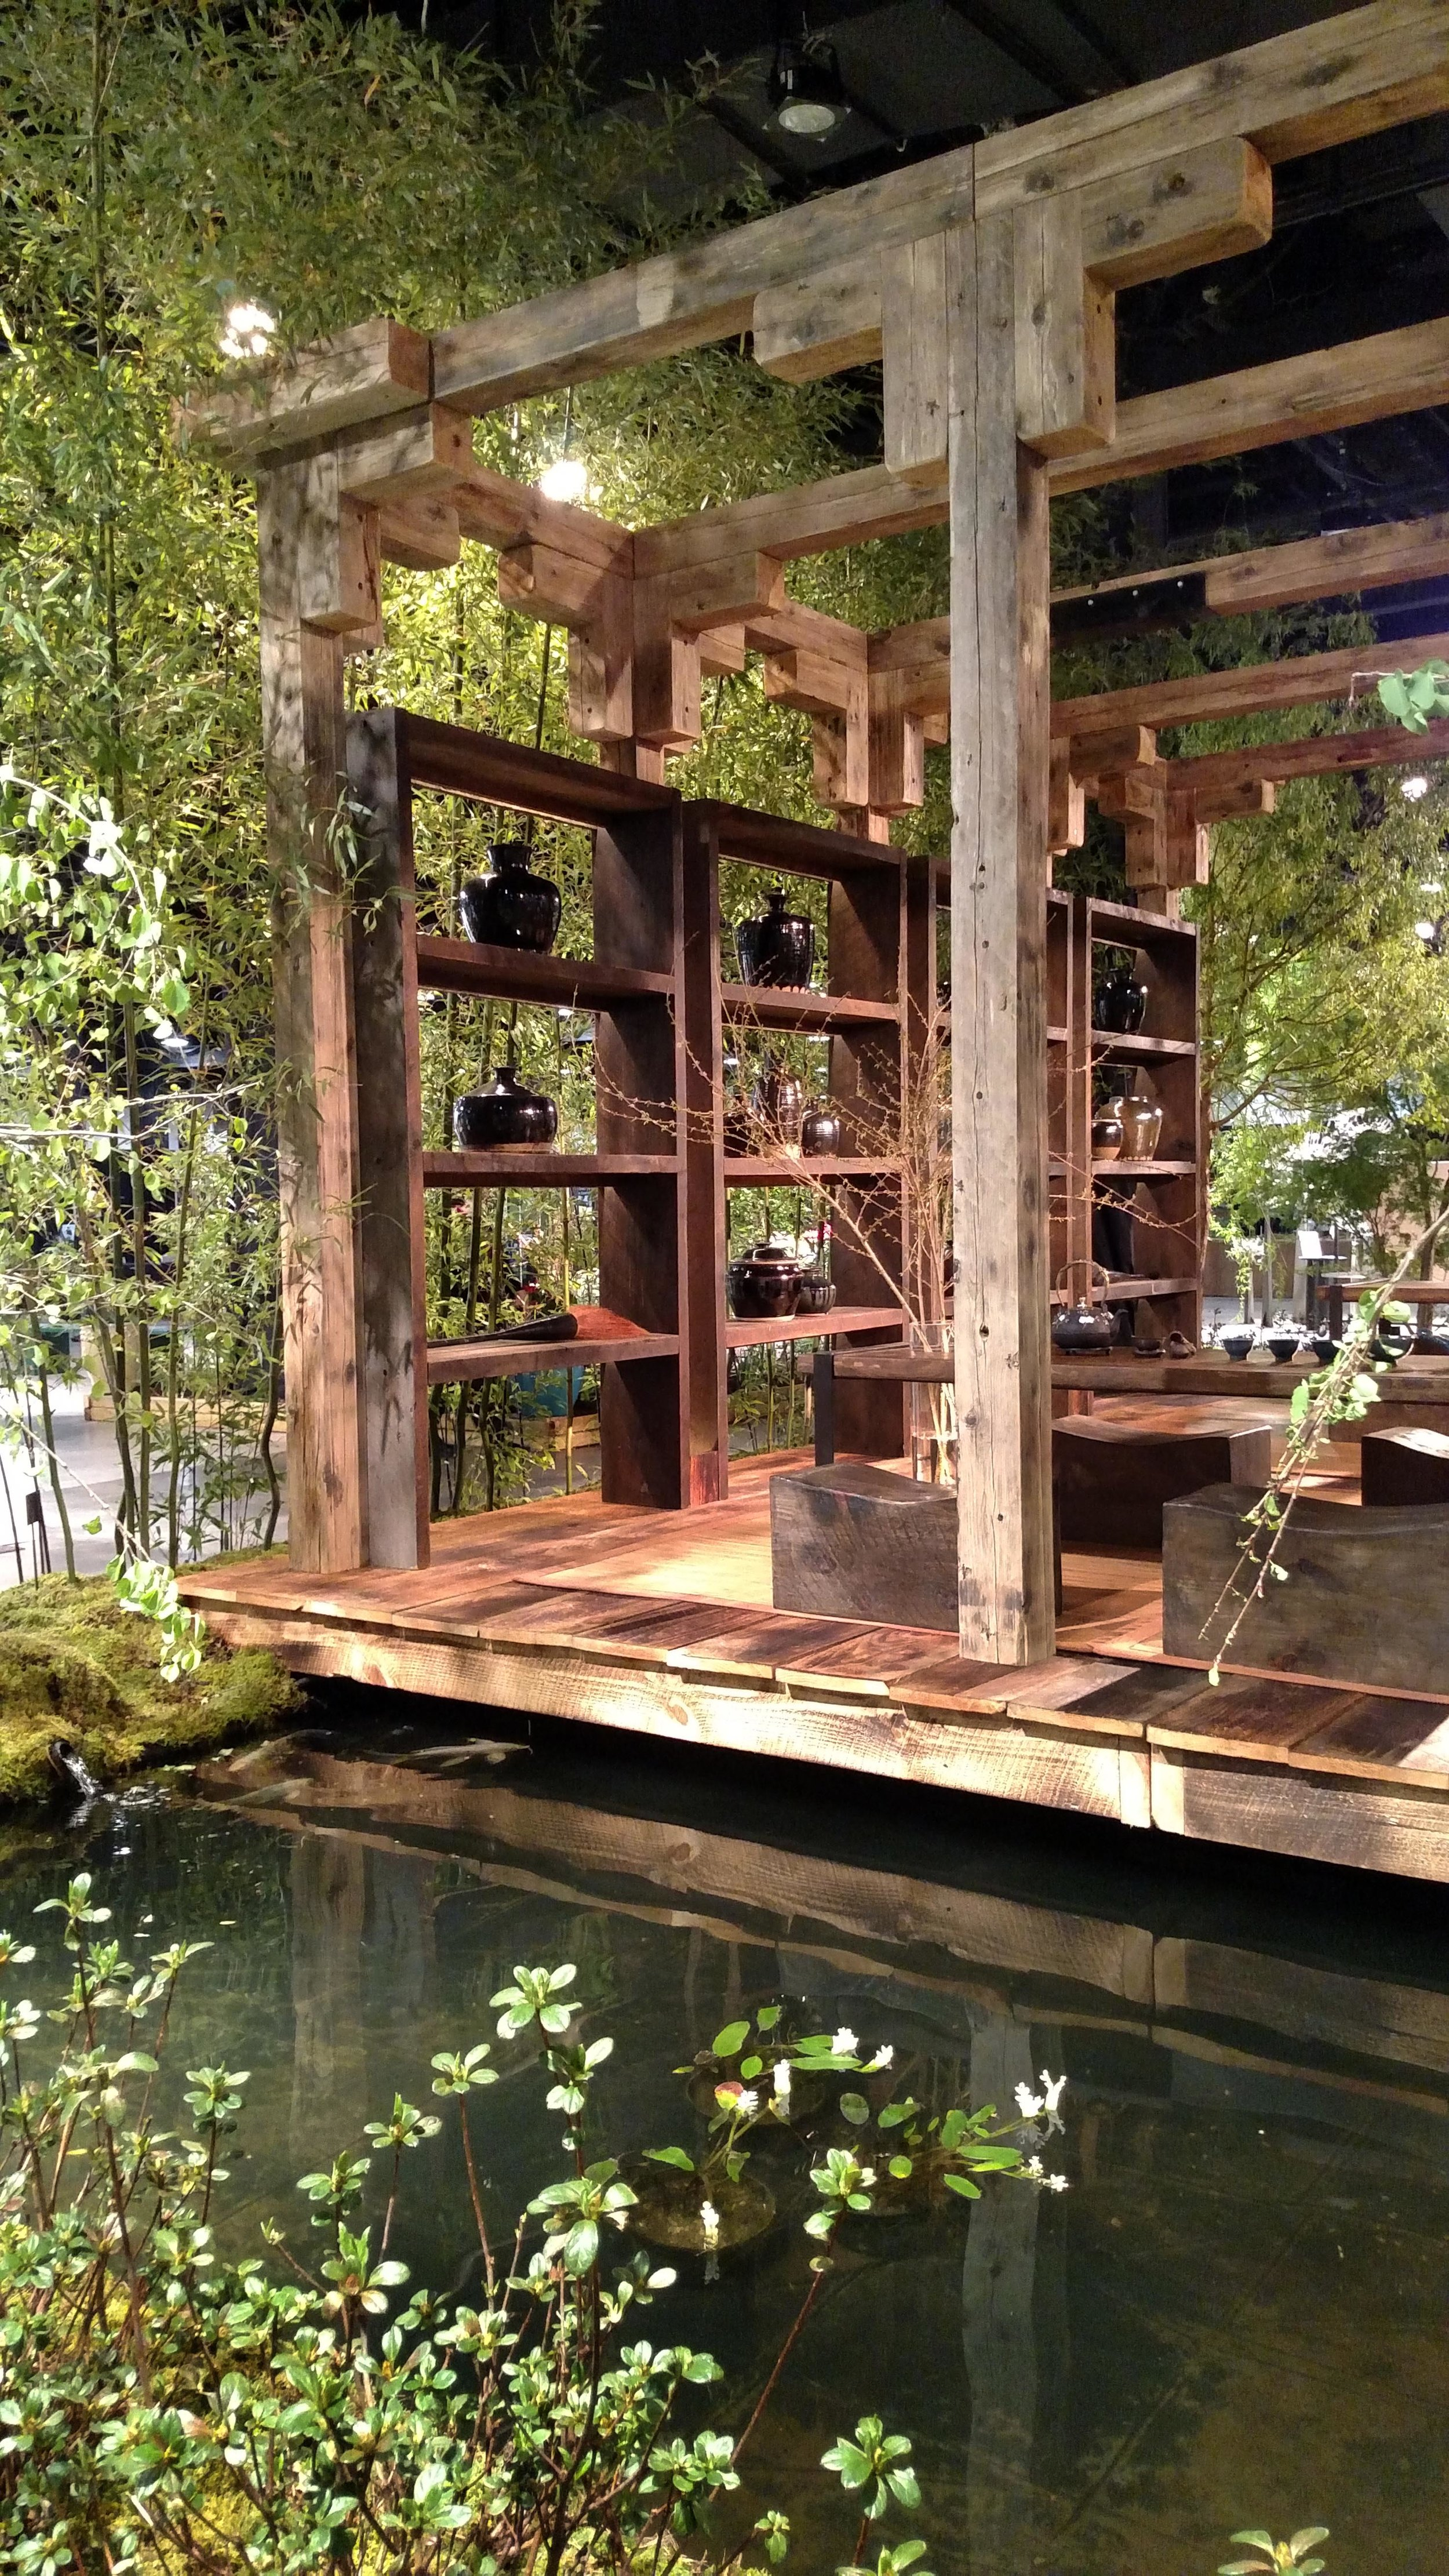 (301) The Teahouse, Interiors by MS.jpg